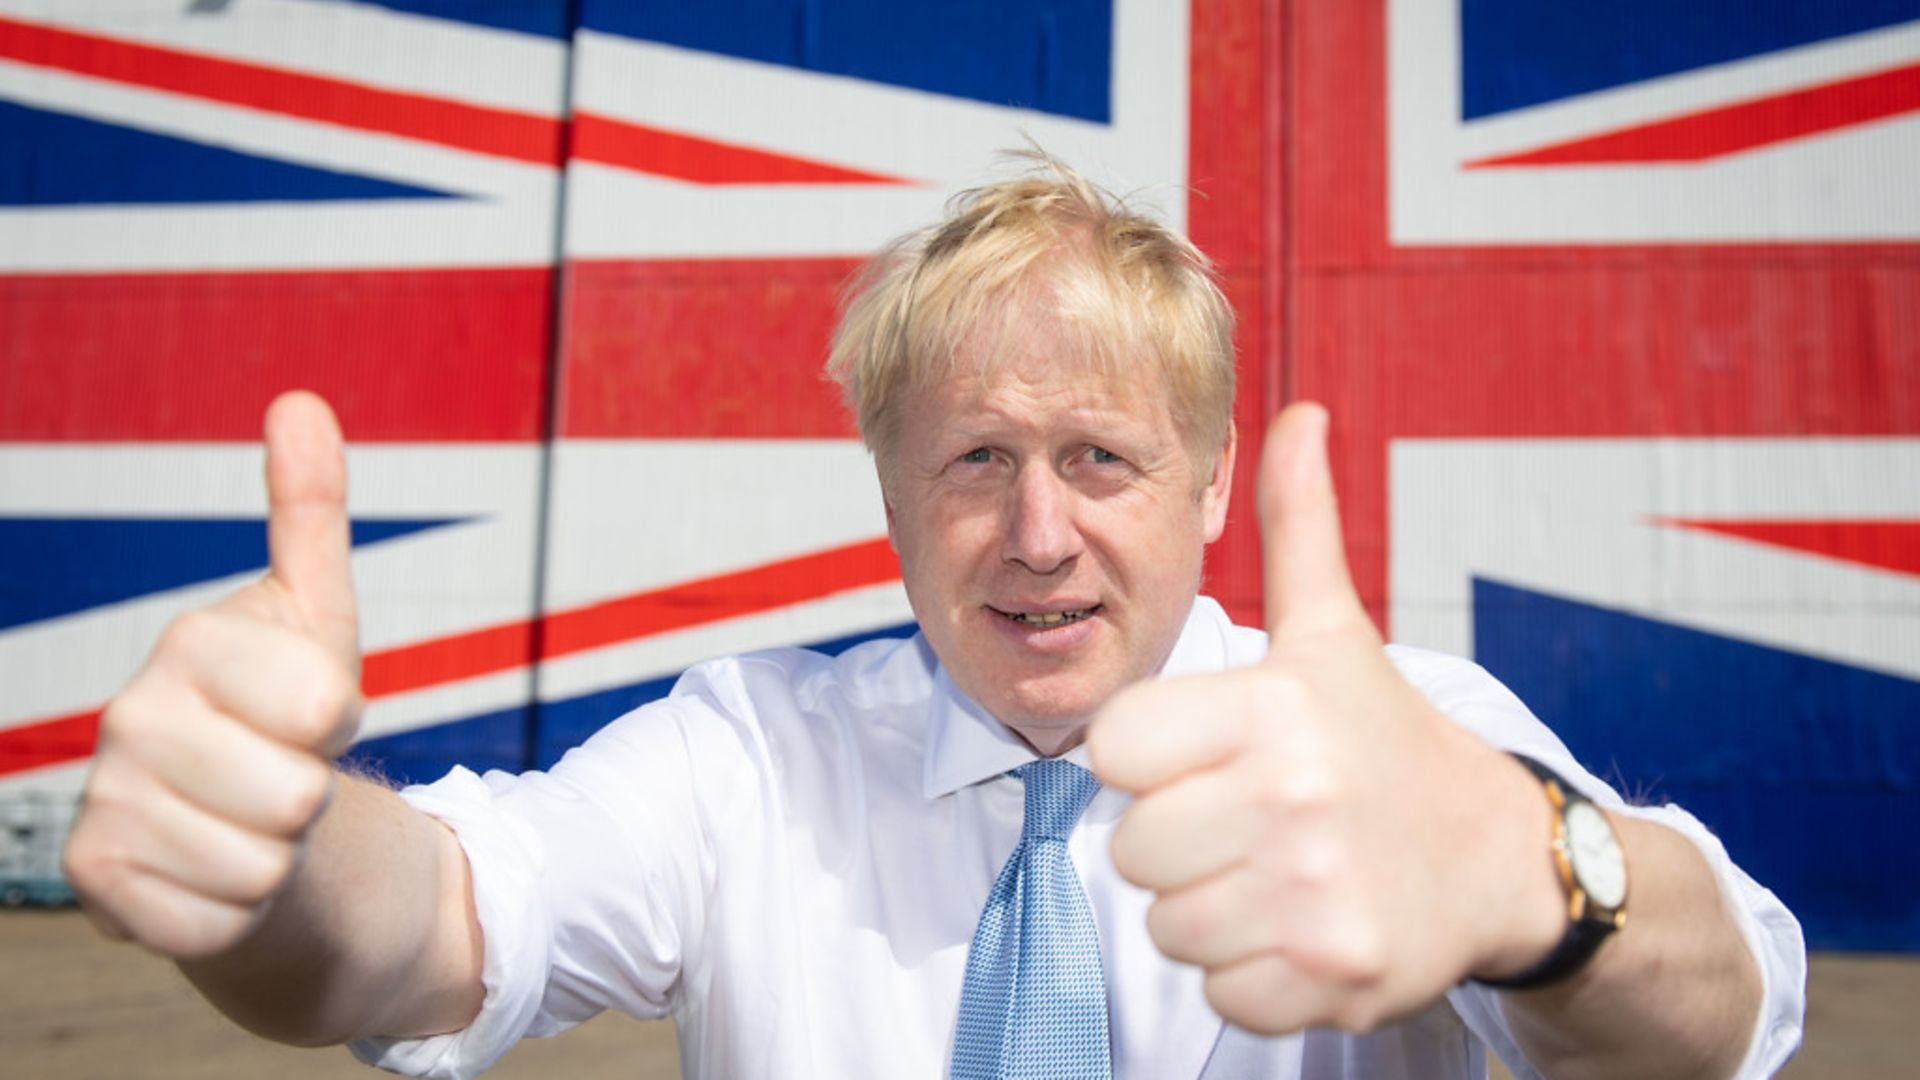 Boris Johnson poses for a photograph in front of a Union flag - Credit: Getty Images